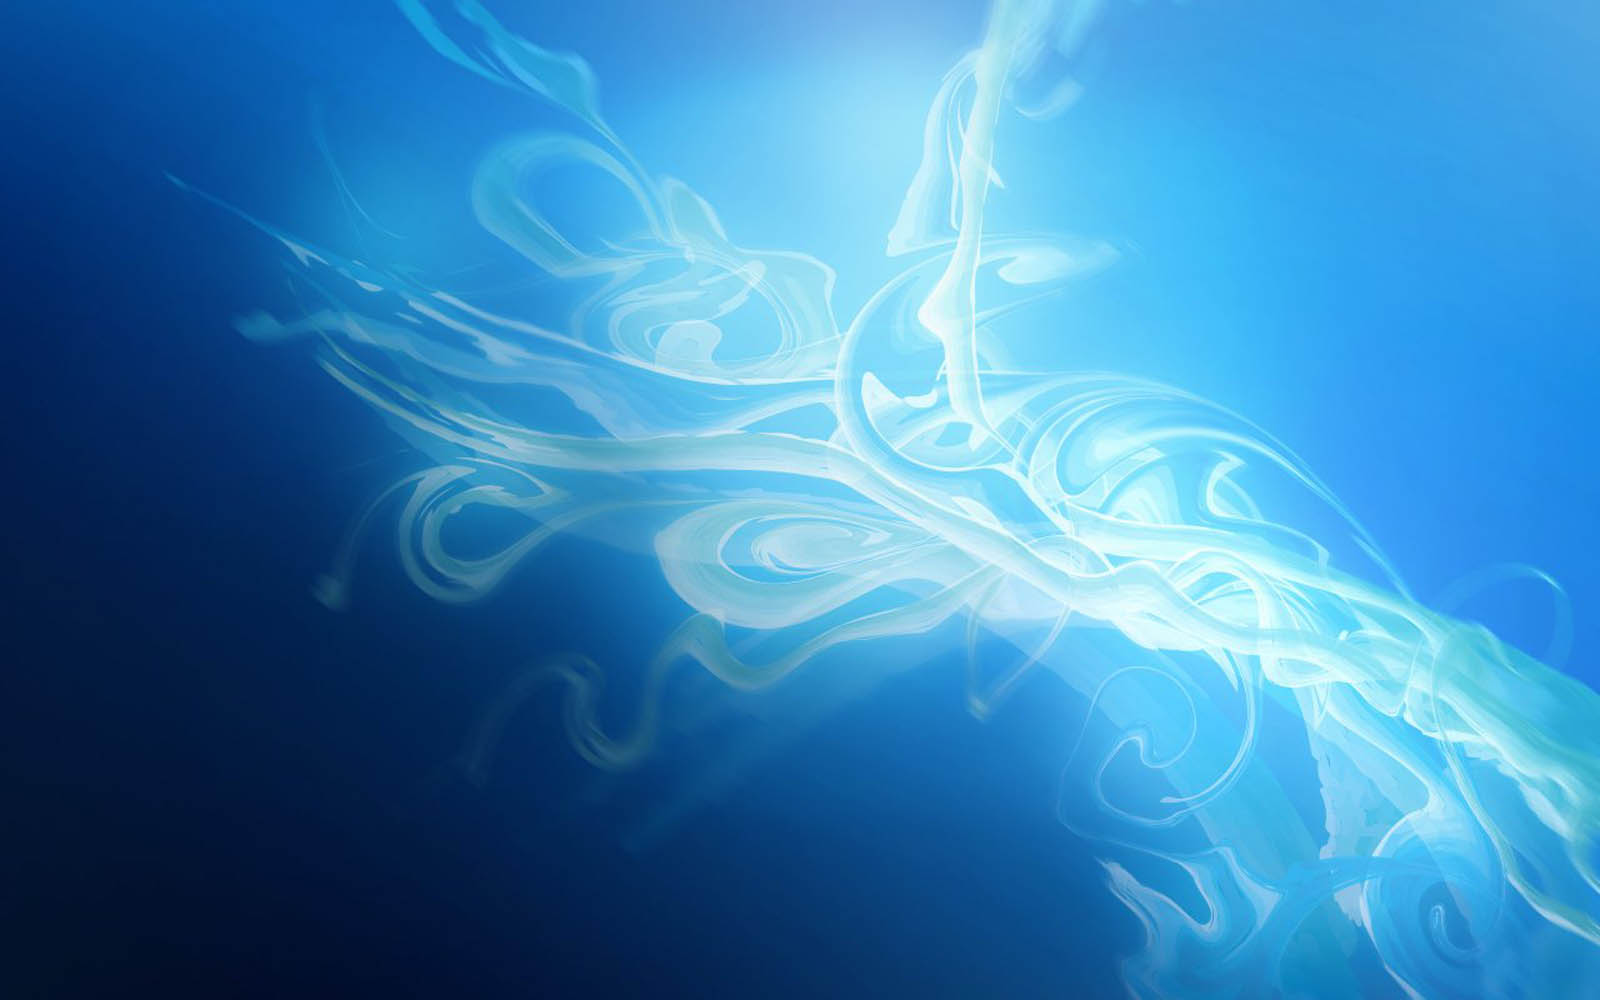 wallpaper: Aqua Blue Wallpapers